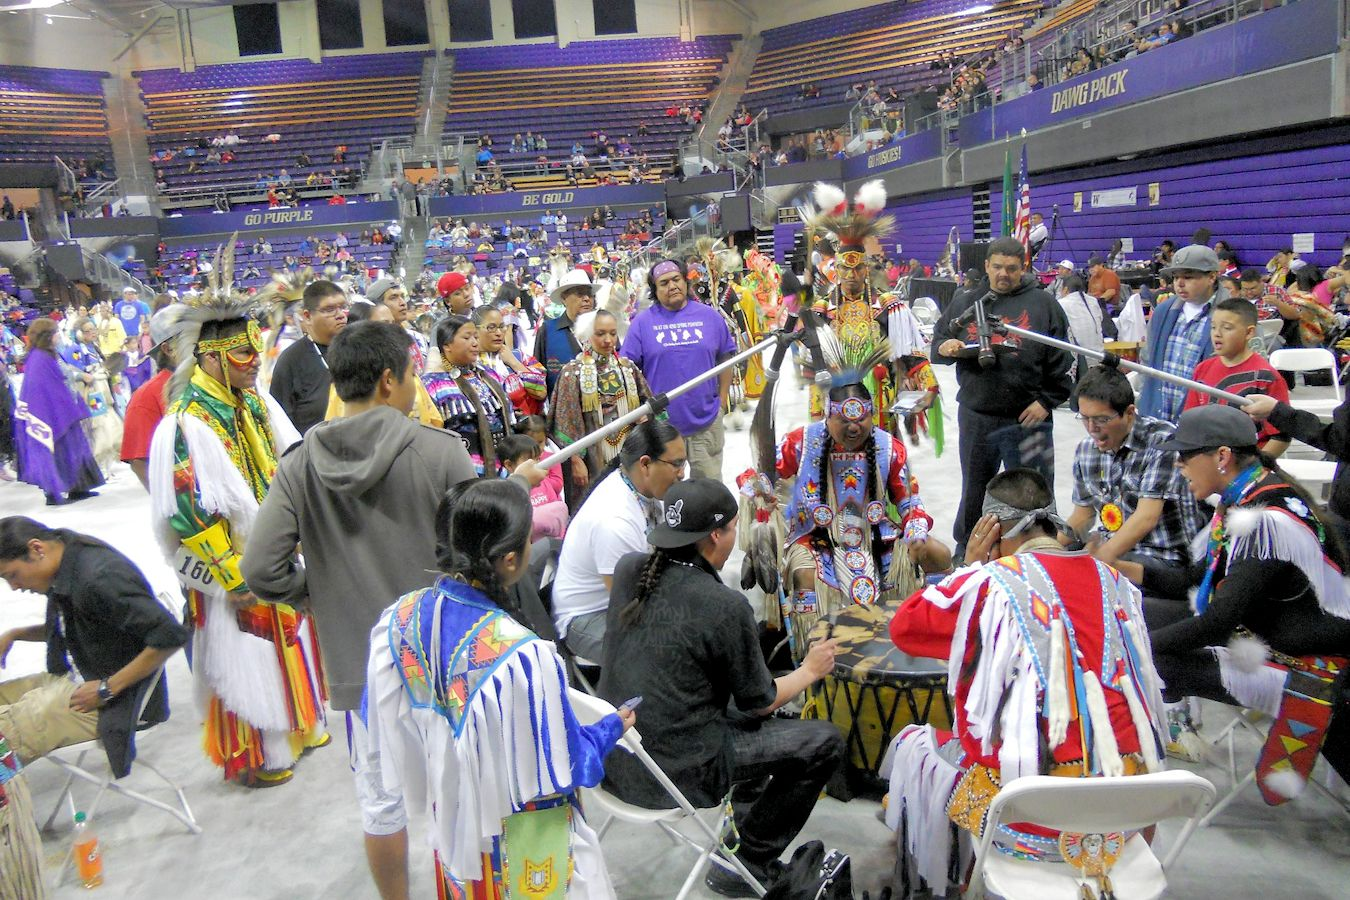 First Nations at UW Spring Powwow